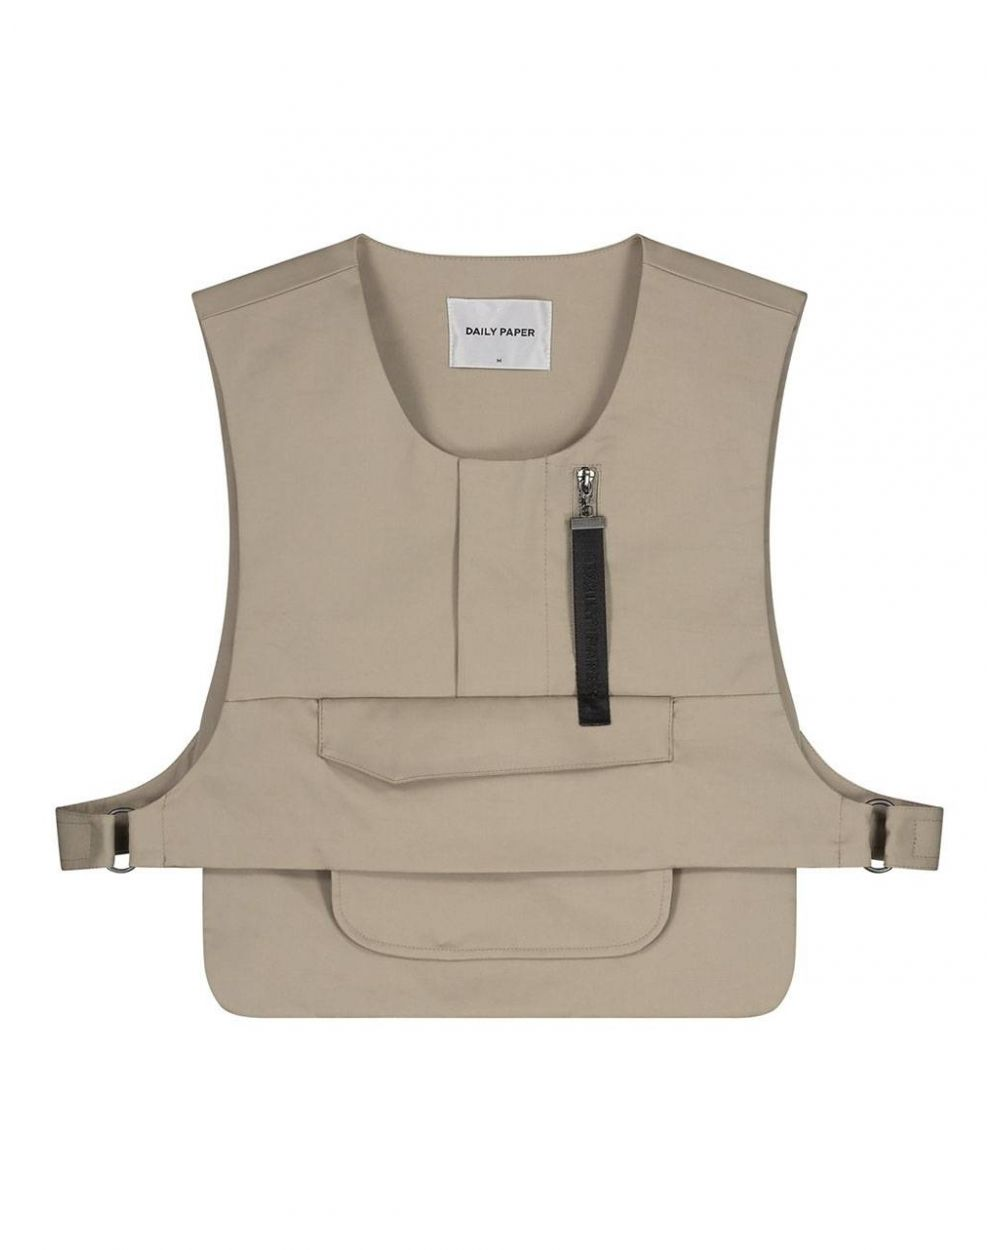 Daily Paper edone vest - sand DAILY PAPER Jacket 132,00€